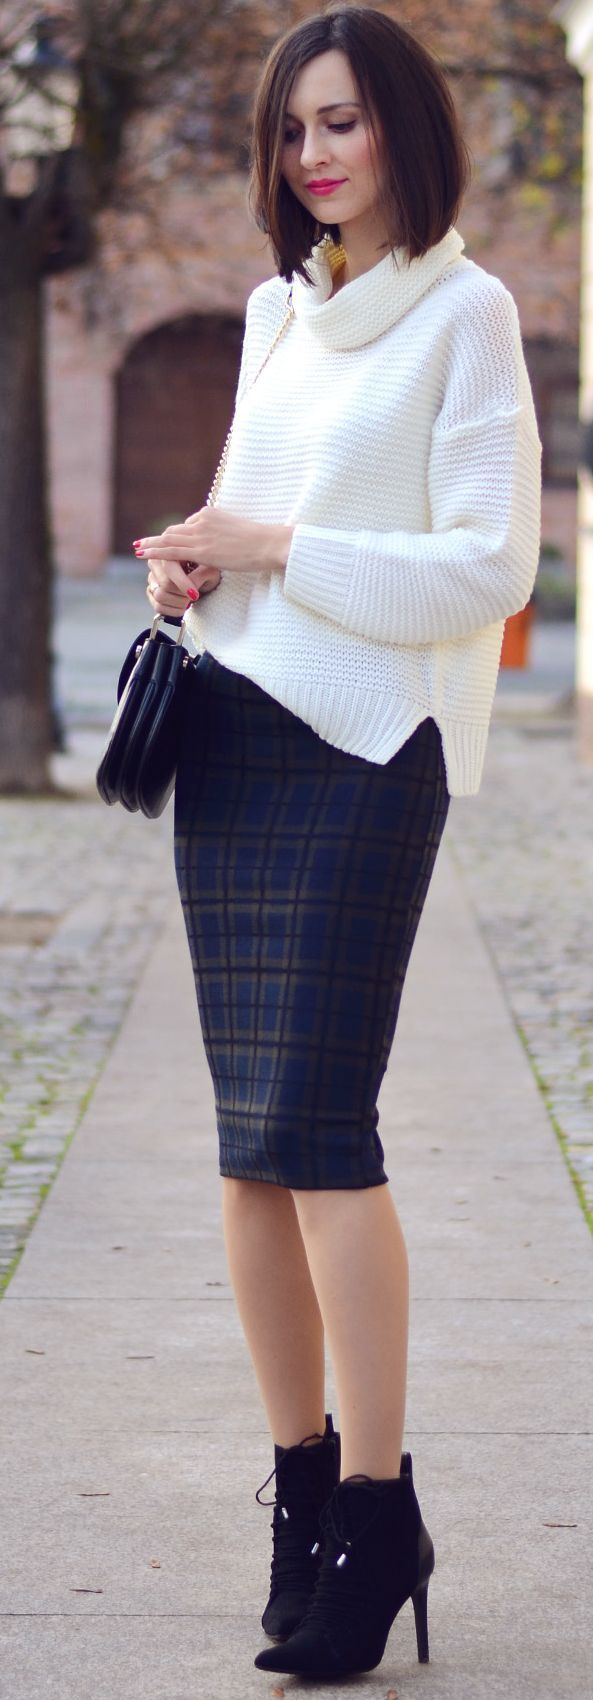 love the bottom half of this outfit, especially the skirt! the sweater is cute but doesn't compliment the style of the skirt and shoes.